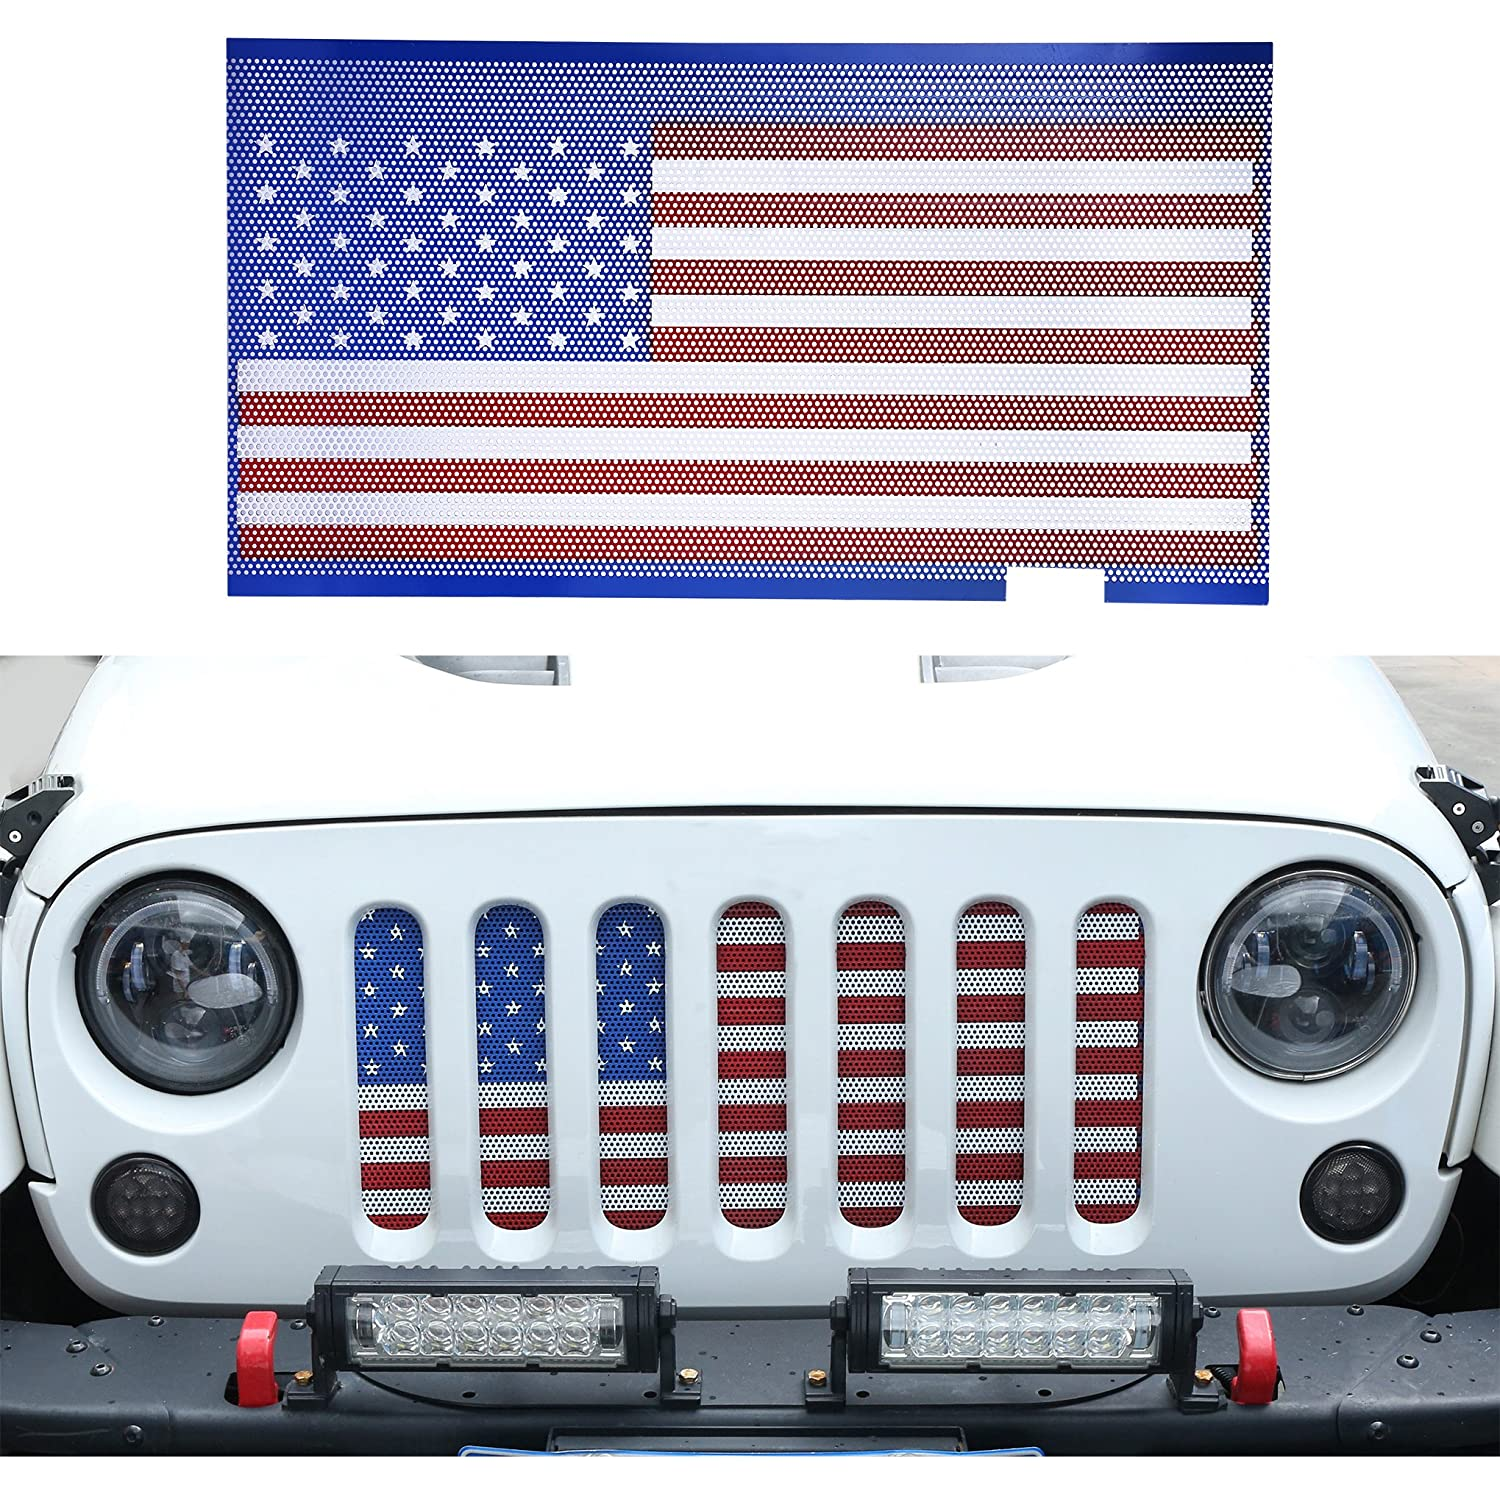 07-16 Jeep JK Wrangler Front Hood Shiny Black Replacement Grille Shell Rubicon